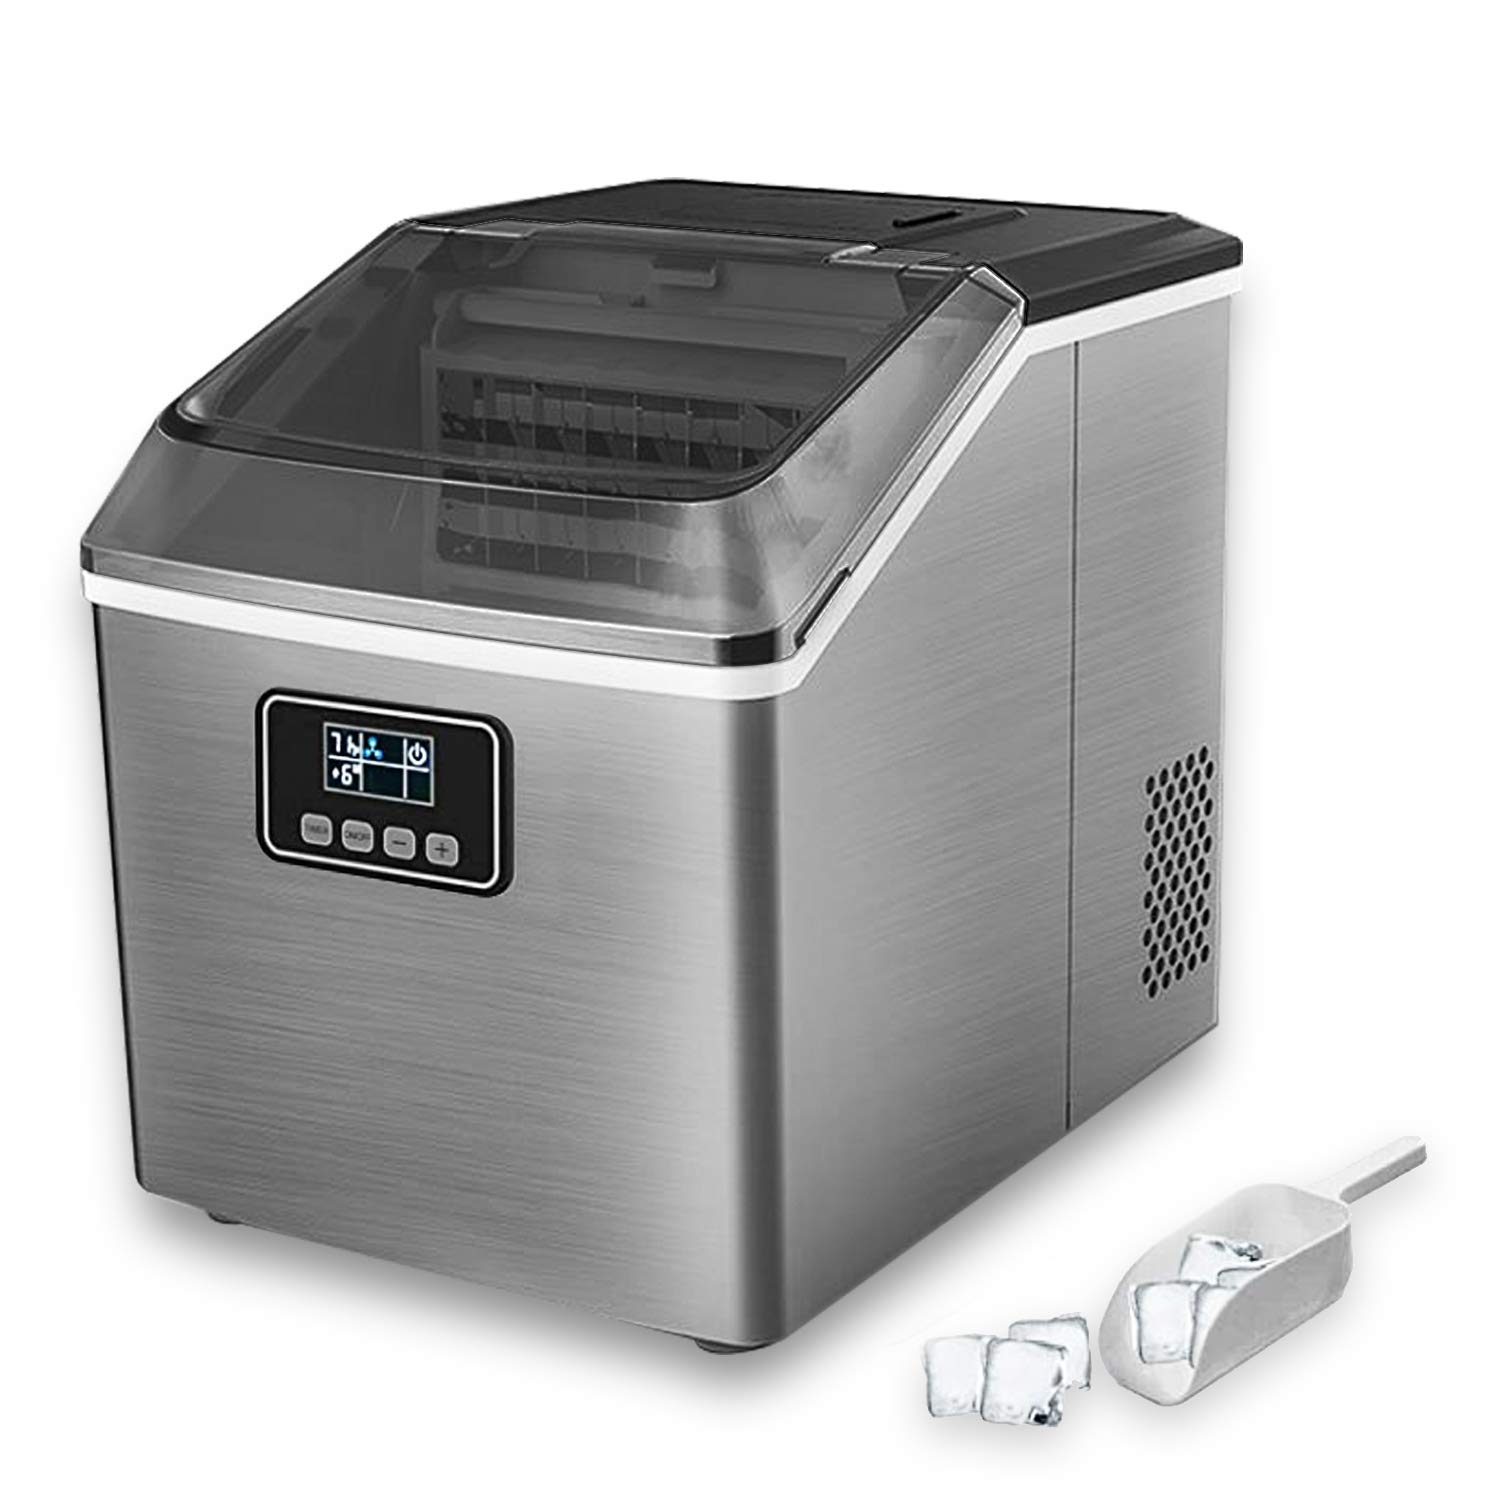 Portable Ice Maker Machine for Countertop, 40LBS Ice Cubes Daily with LED Display Self-Cleaning Function Perfect for Home Office Bar Parties, Electric Nugget Ice Maker with Ice Scoop and 2.4L Basket